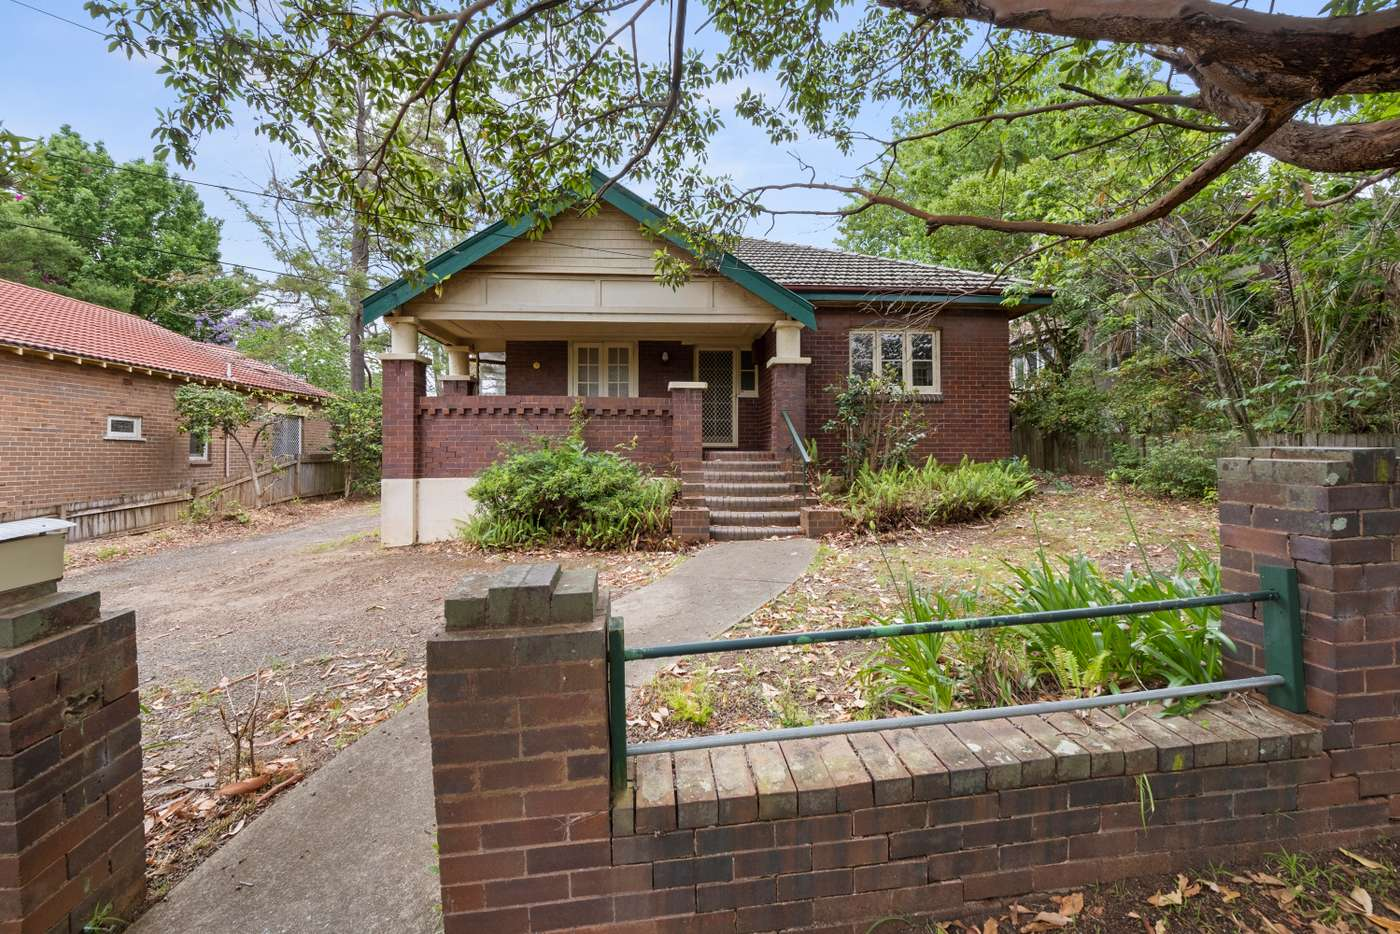 Main view of Homely house listing, 25 Warne Street, Pennant Hills NSW 2120